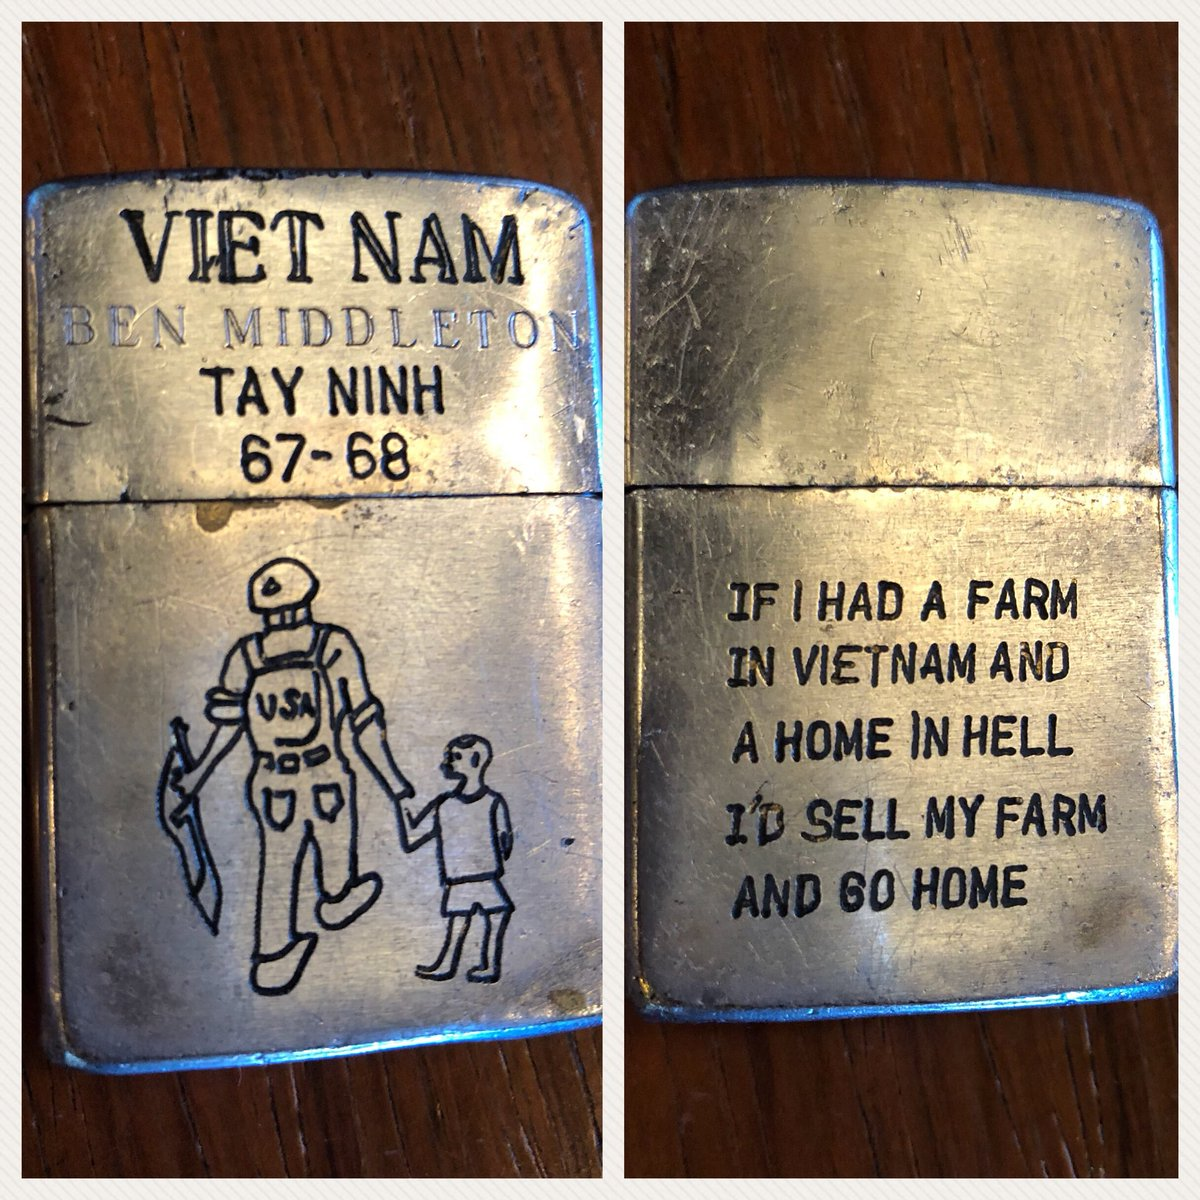 Crowdsourcing: Discovered this antique Zippo Lighter that may have belonged to someone in the Vietnam War who served in Tay Ninh in 1967-68. Would like to return to its rightful owner! Please share to help get this back to Ben Middleton.